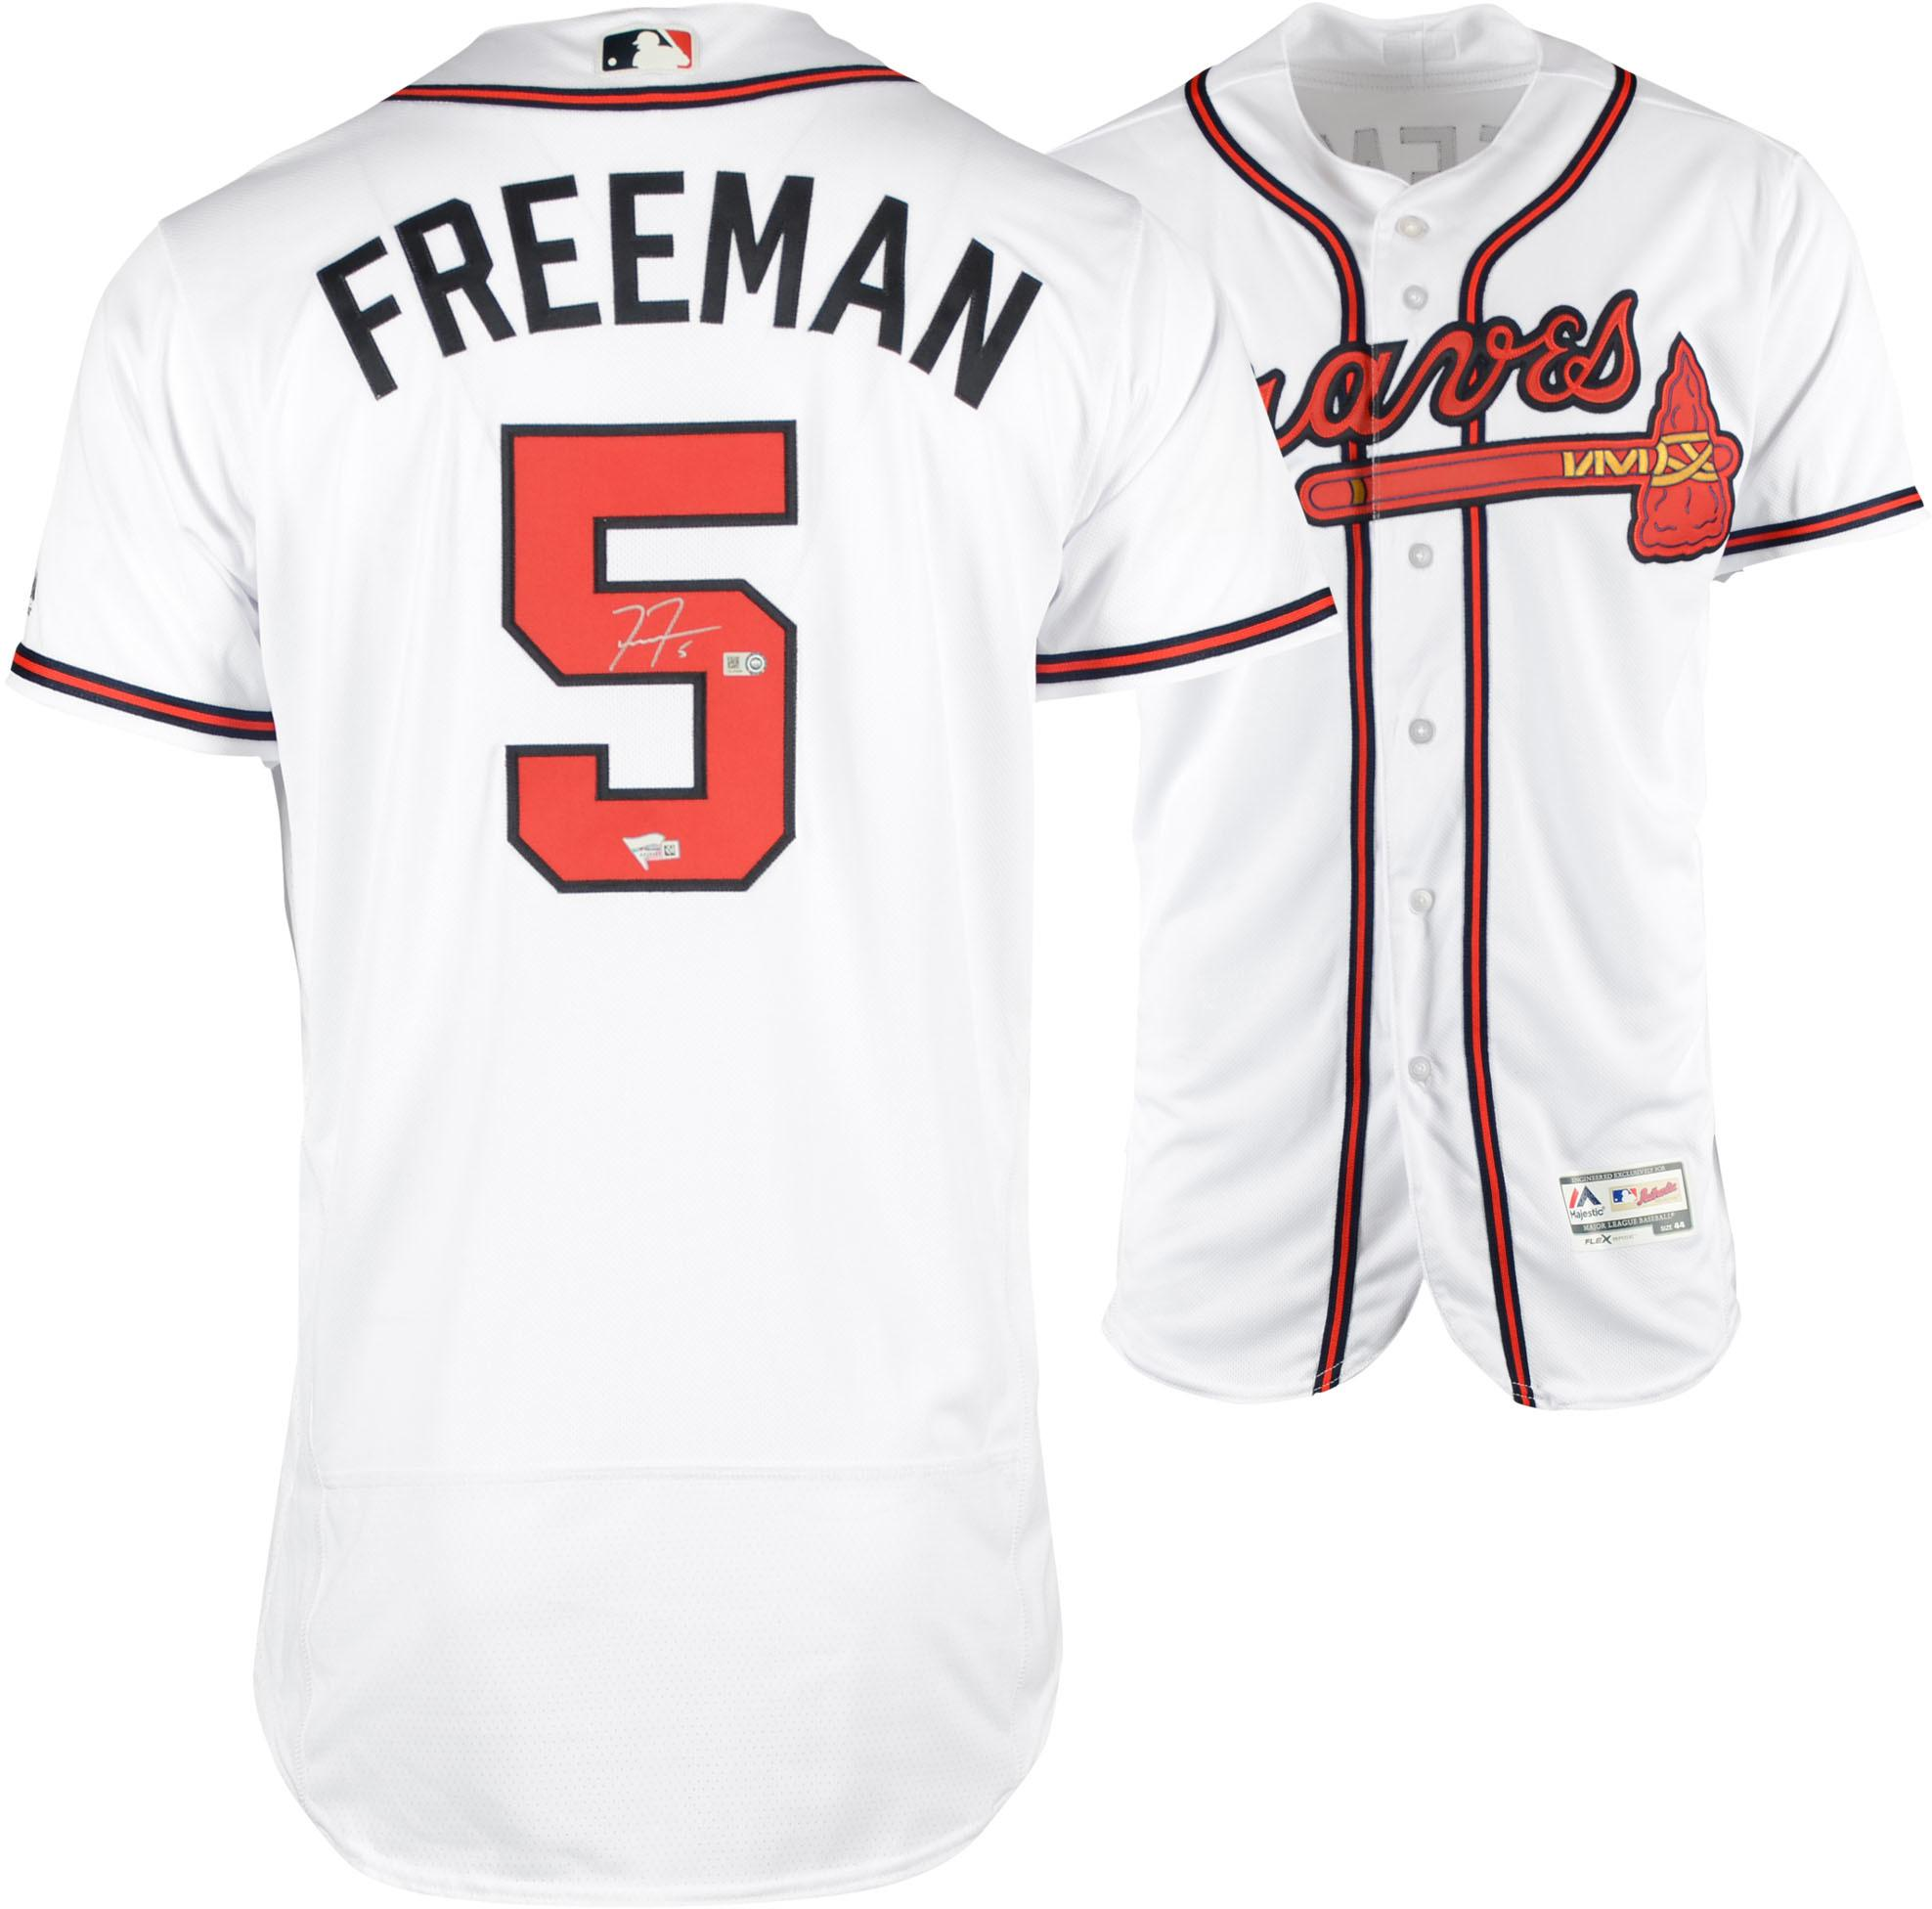 Freddie Freeman Atlanta Braves Autographed Majestic White Authentic Jersey - Fanatics Authentic Certified